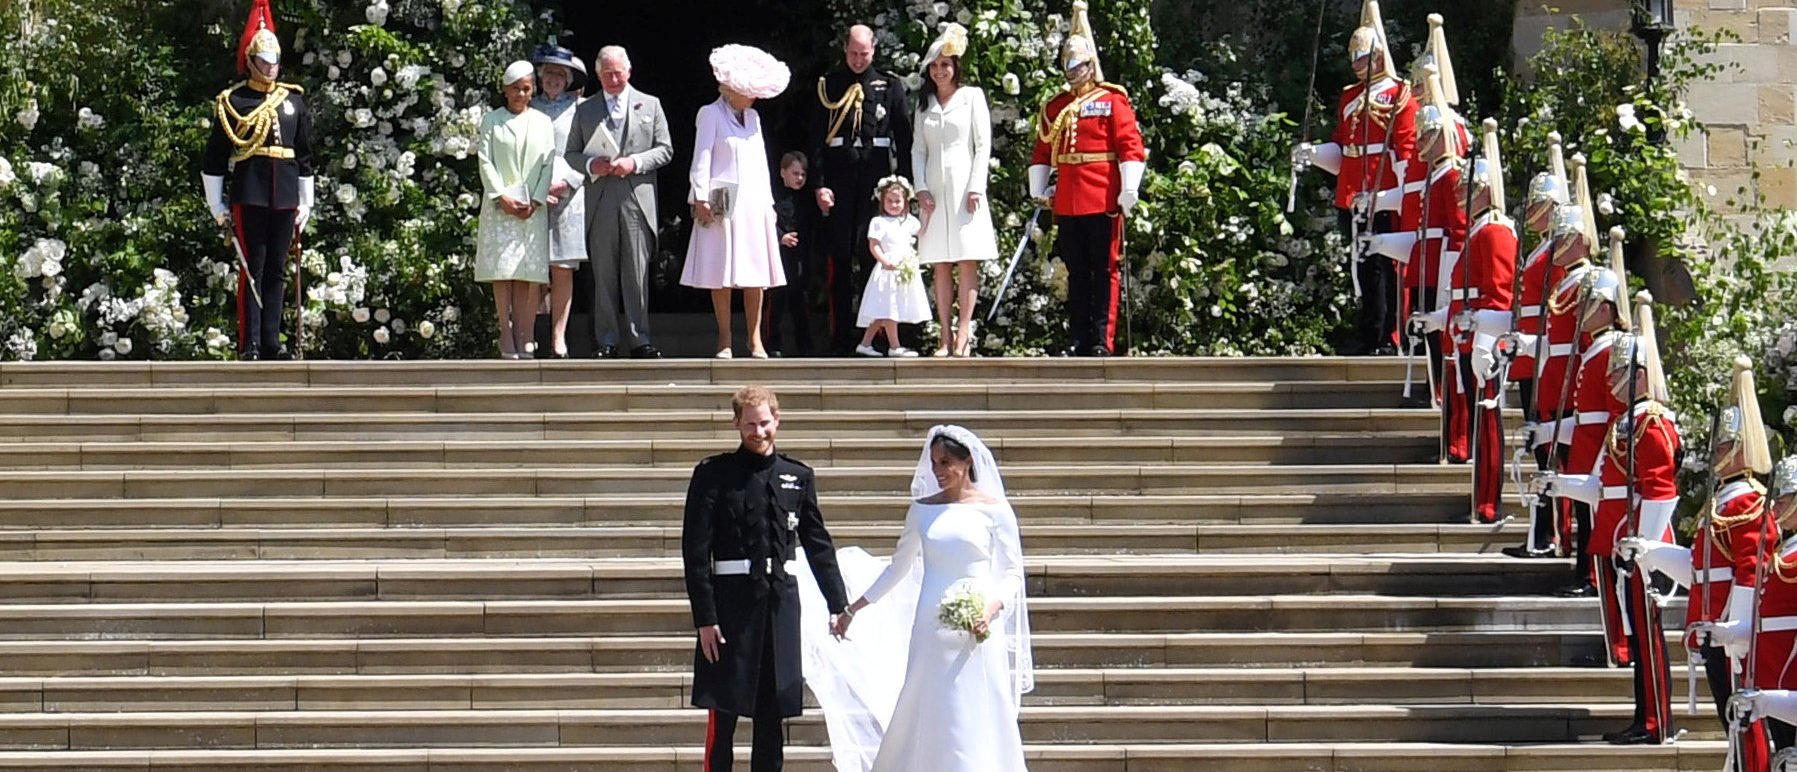 Britain's Prince Harry (L), Duke of Sussex and Meghan (R), Duchess of Sussex exit St George's Chapel in Windsor Castle after their royal wedding ceremony, in Windsor, Britain, 19 May 2018. The couple have been bestowed the royal titles of Duke and Duchess of Sussex on them by the British monarch. NEIL HALL/Pool via REUTERS - RC13A9C94CA0